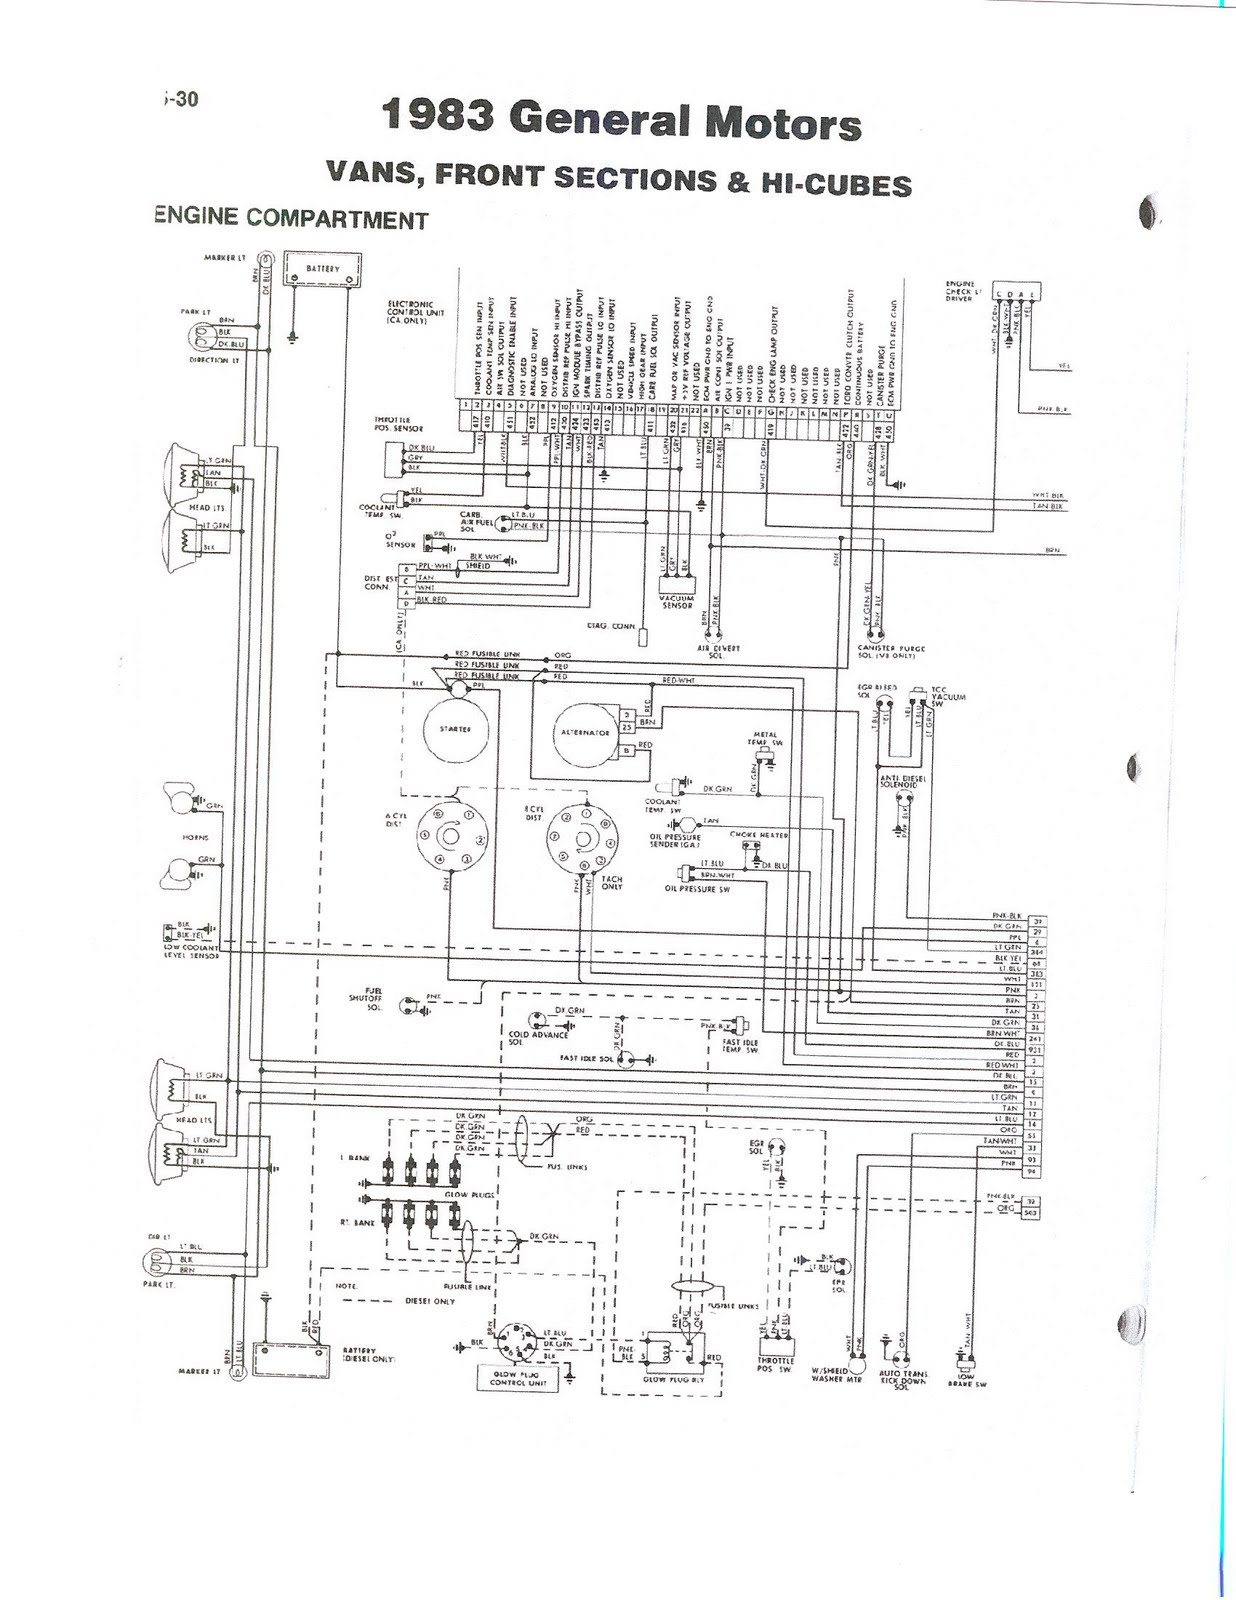 1983 fleetwood pace arrow owners manuals wireing diagram 83 gm van wireing diagram 83 gm van front section hi cube asfbconference2016 Choice Image